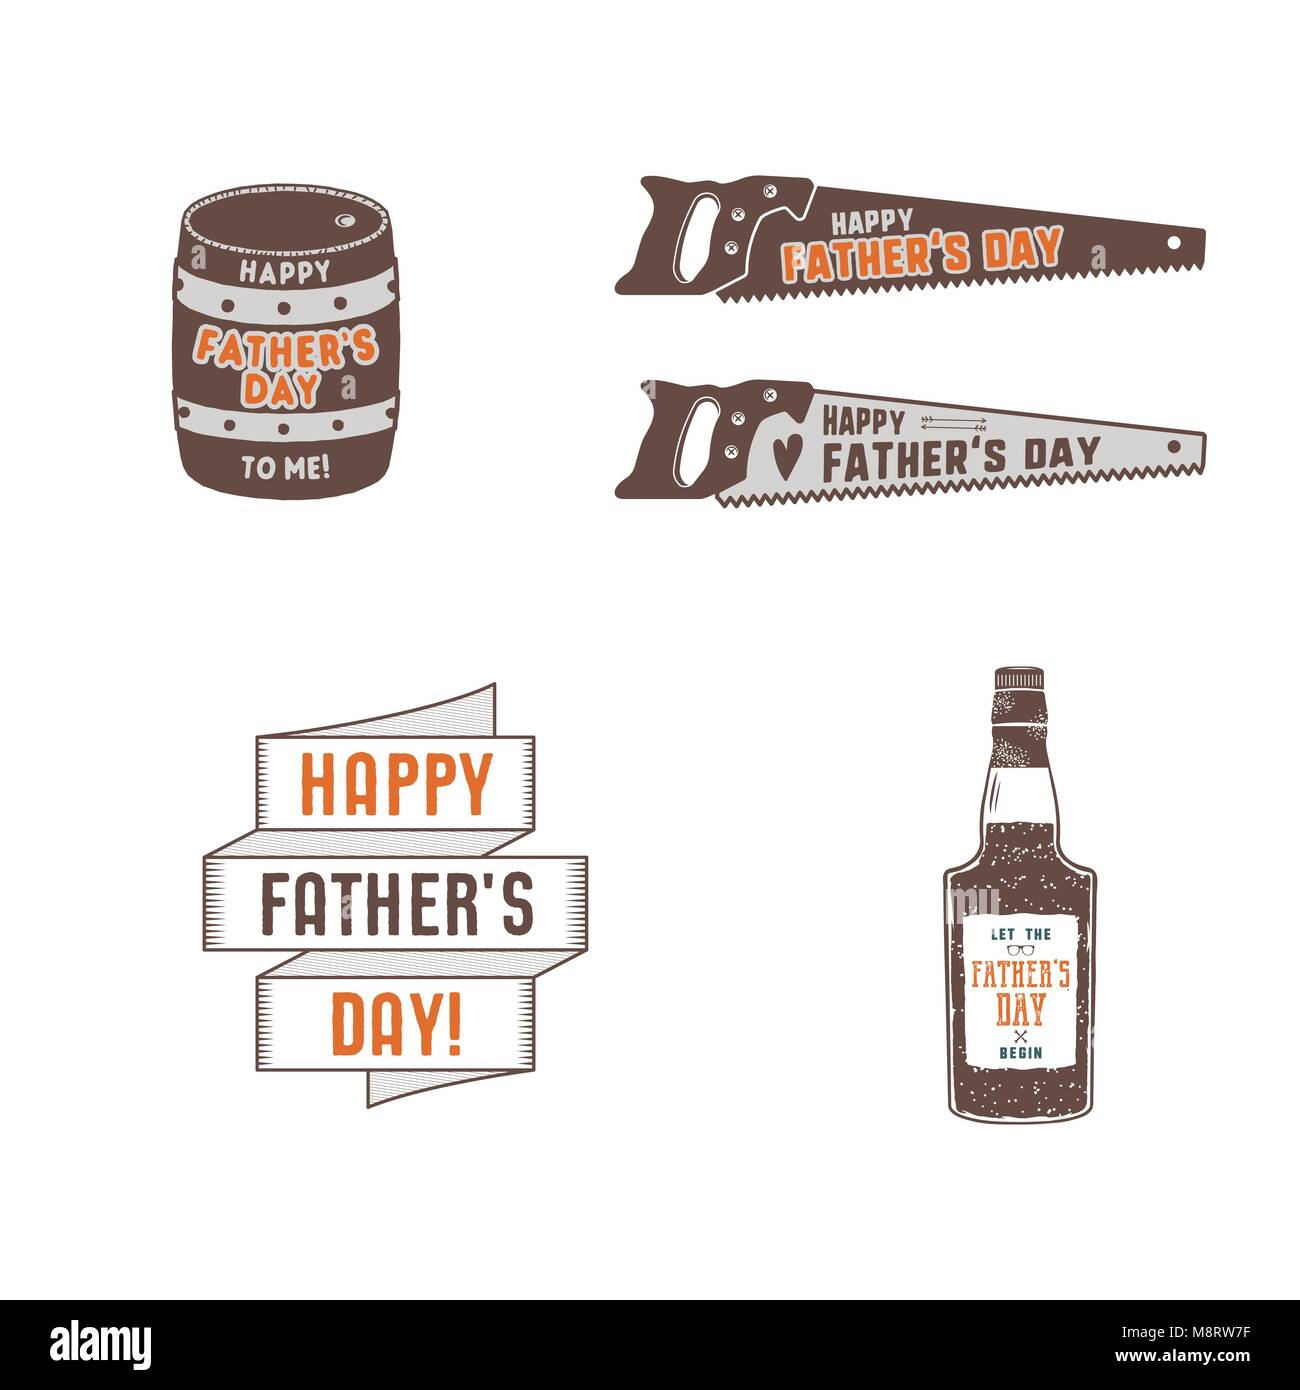 Fathers day badges, labels collection. Holiday stickers for t shirts and other identity. Retro color design. Vintage - Stock Image